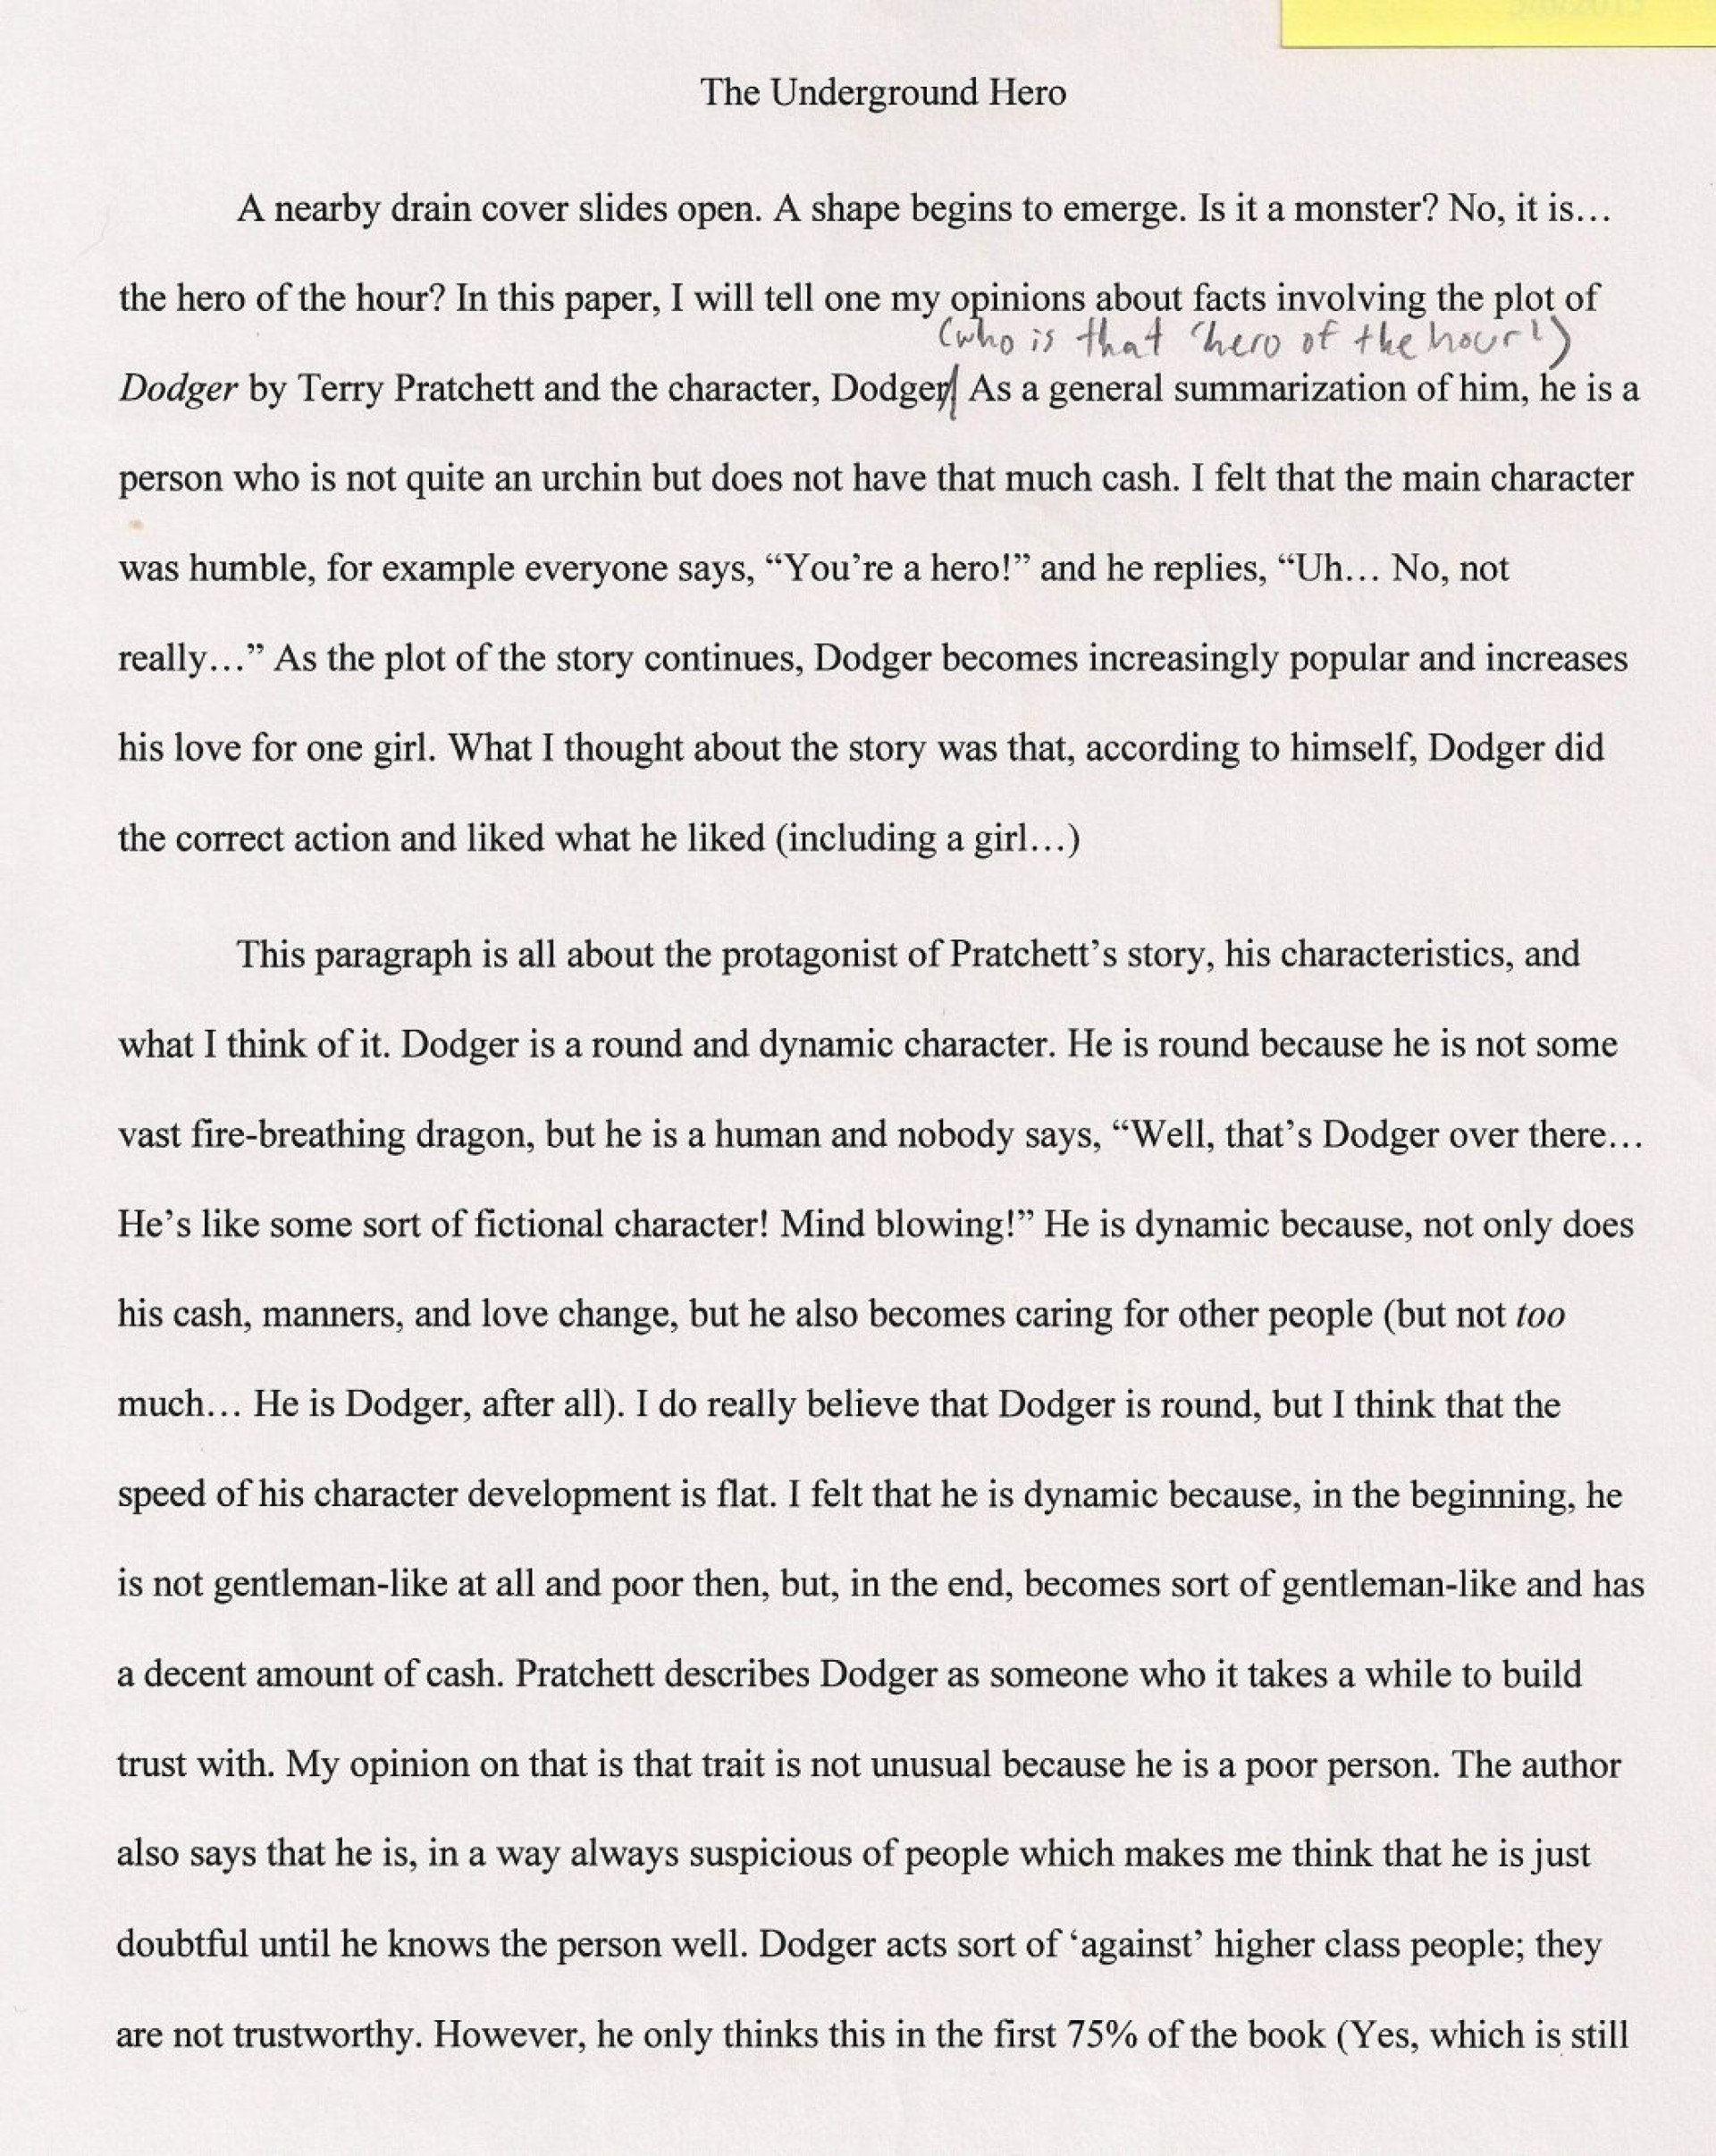 013 An Essay About My Hero Essays On Heroess Good Writing What To Write Argumentative The Undergro Should I 1048x1317 Fascinating Heroine Teacher 500 Words A Narrative 1920